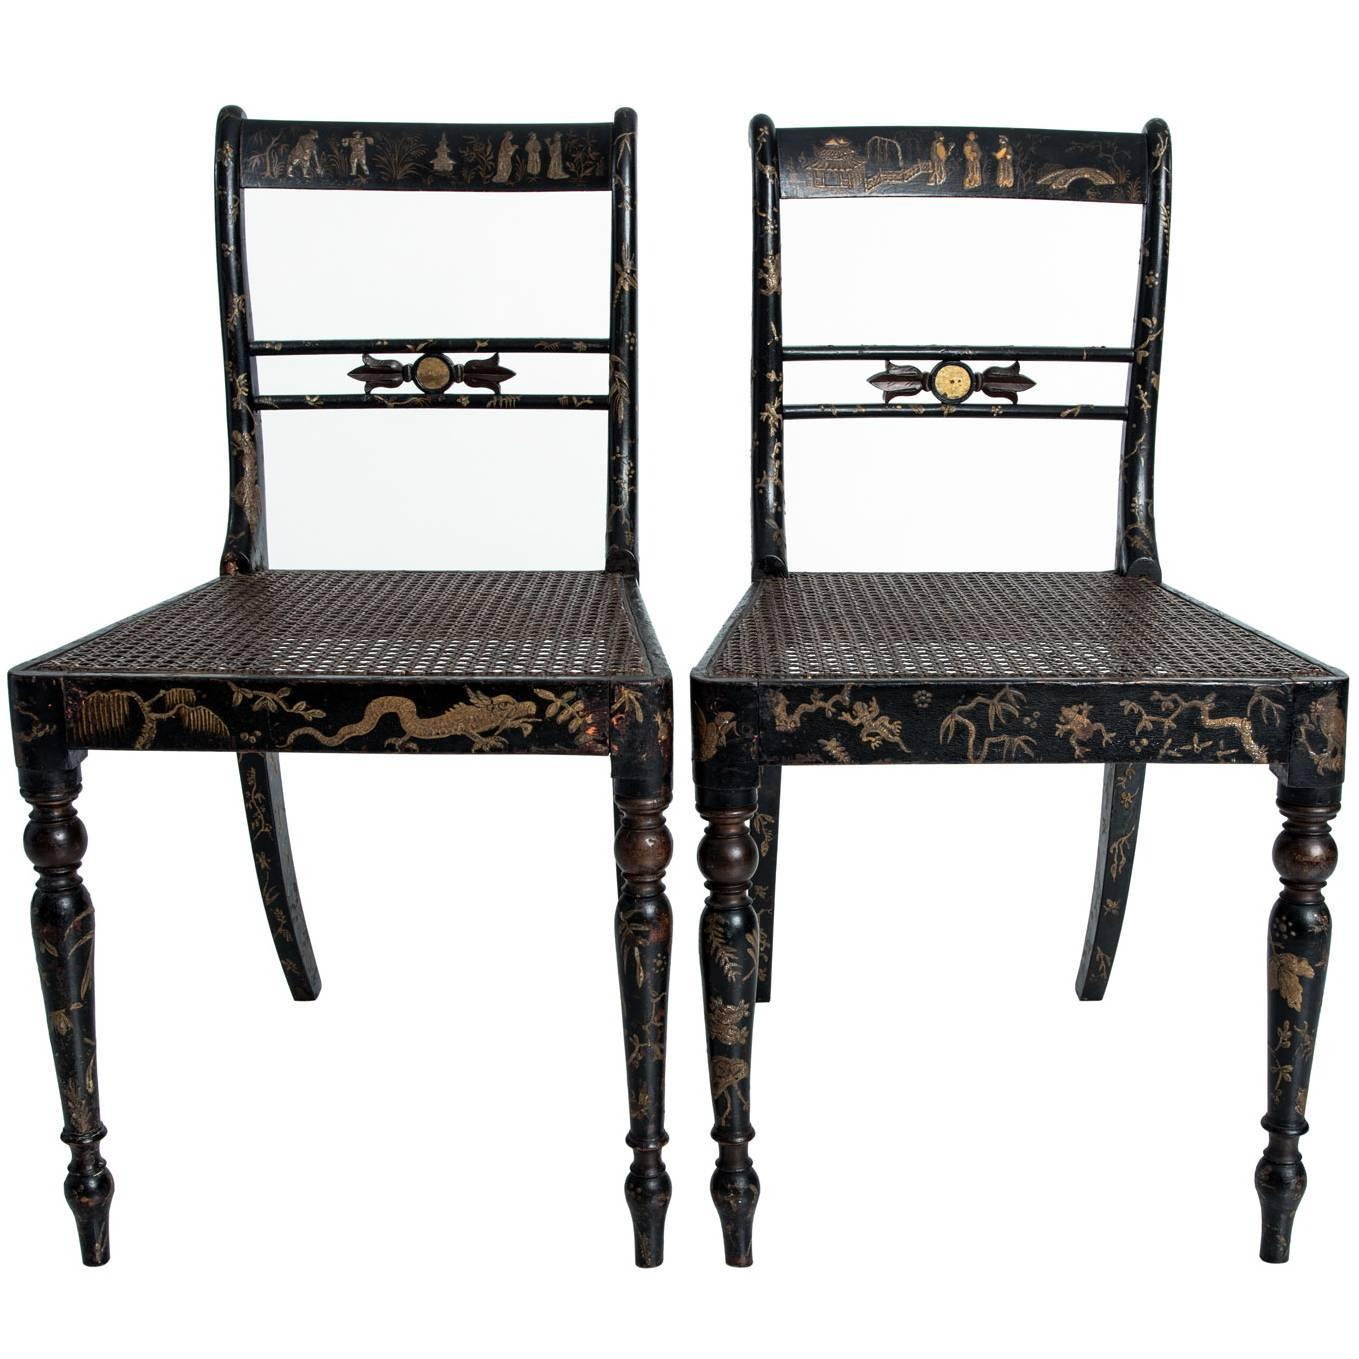 Regency style chinoiserie side chairs for sale at stdibs